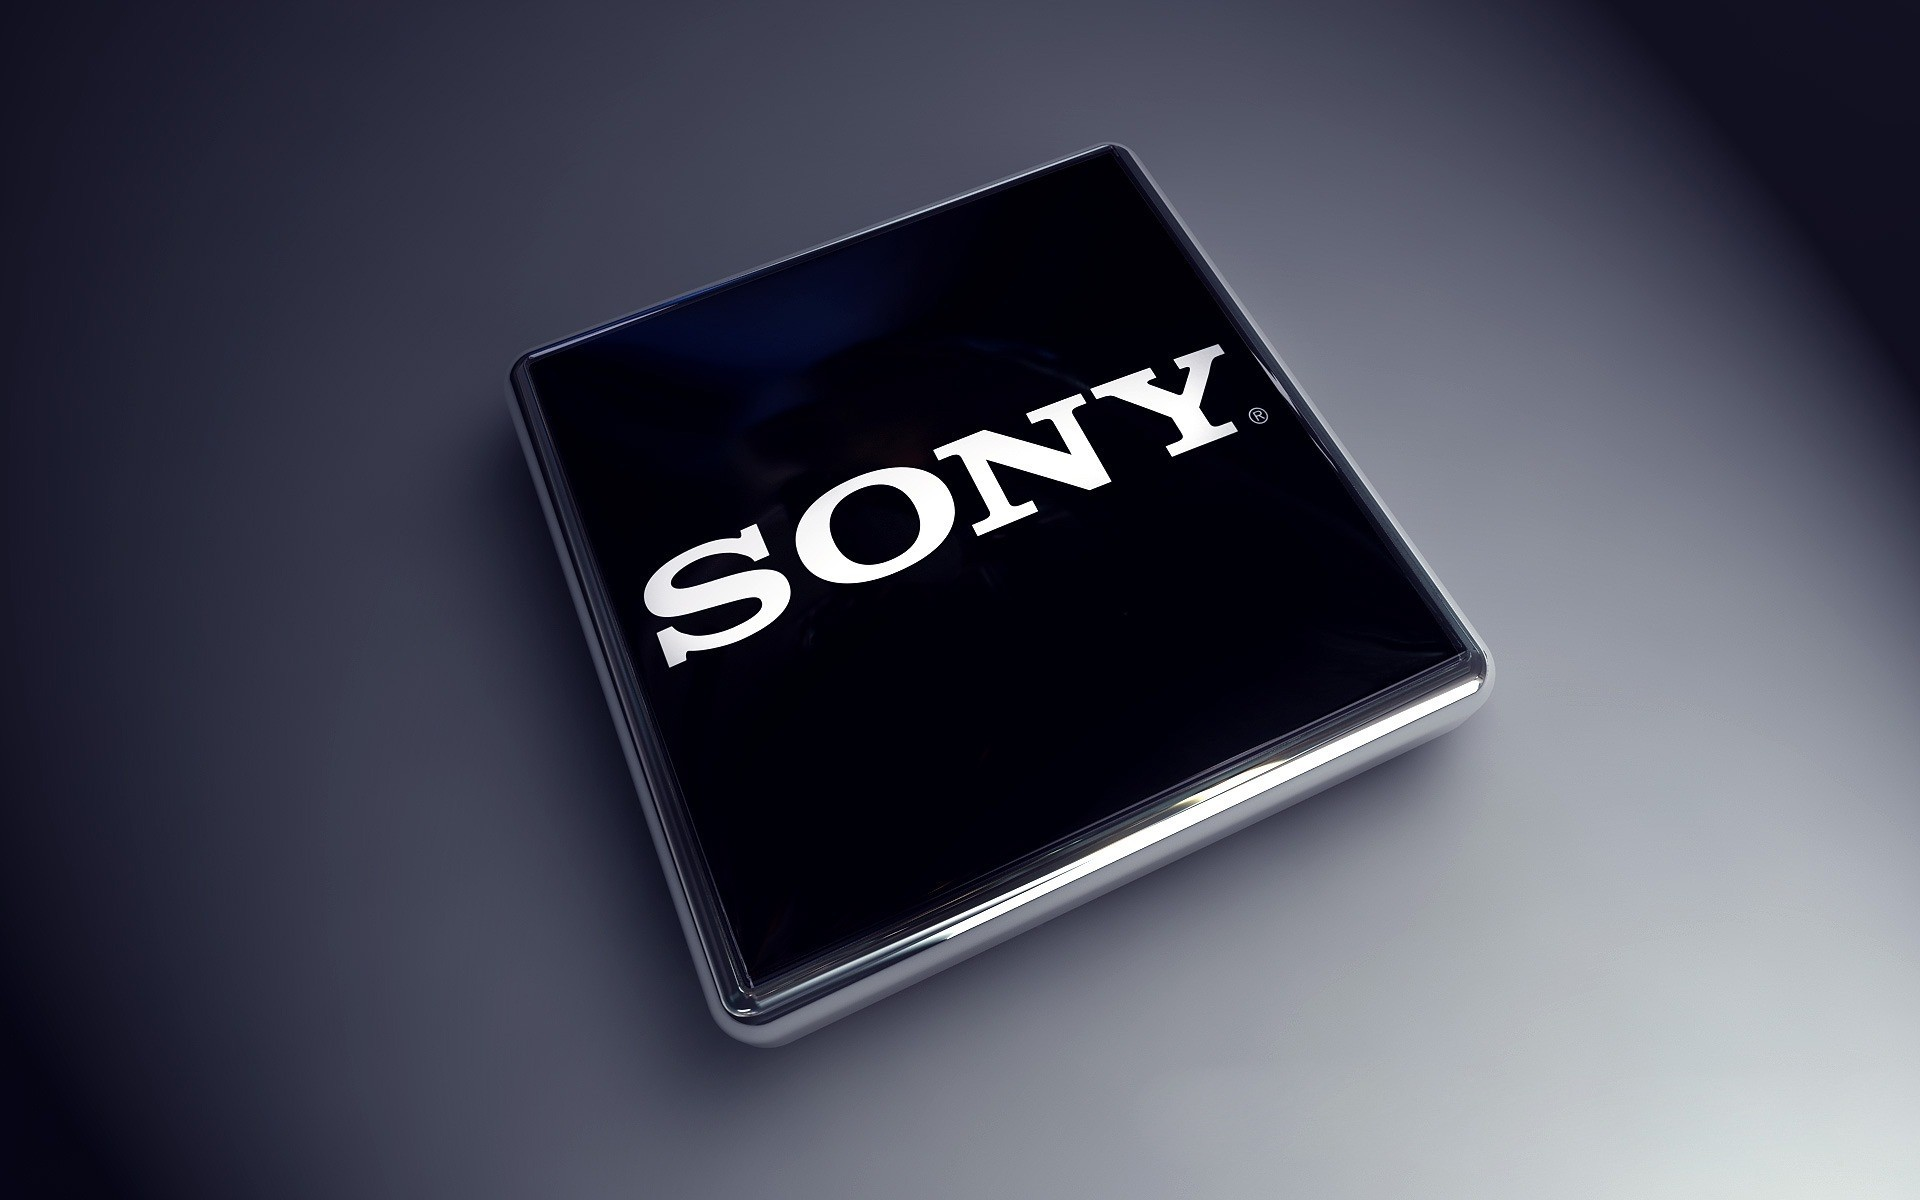 sony internet business technology computer security world wide web